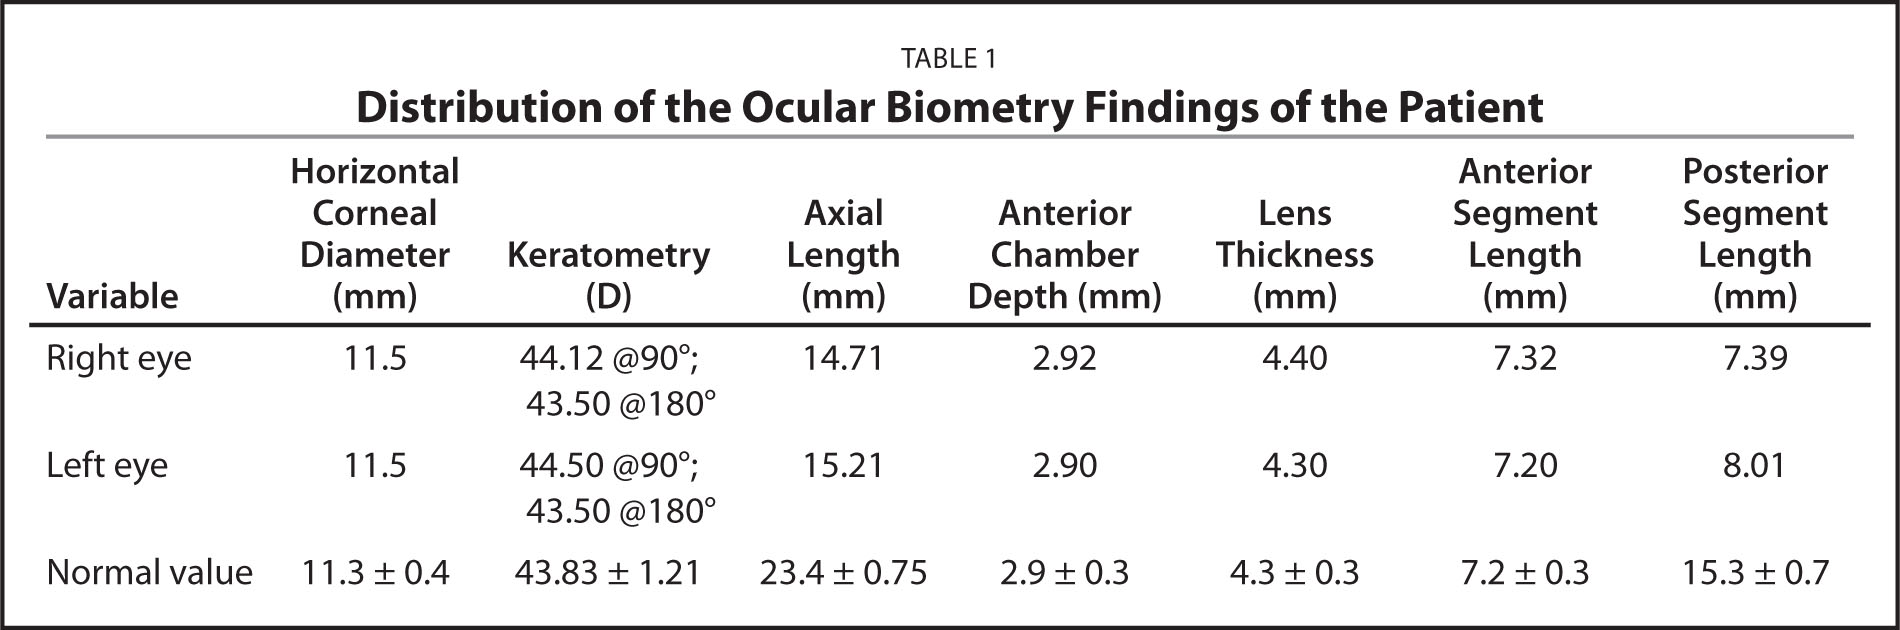 Distribution of the Ocular Biometry Findings of the Patient